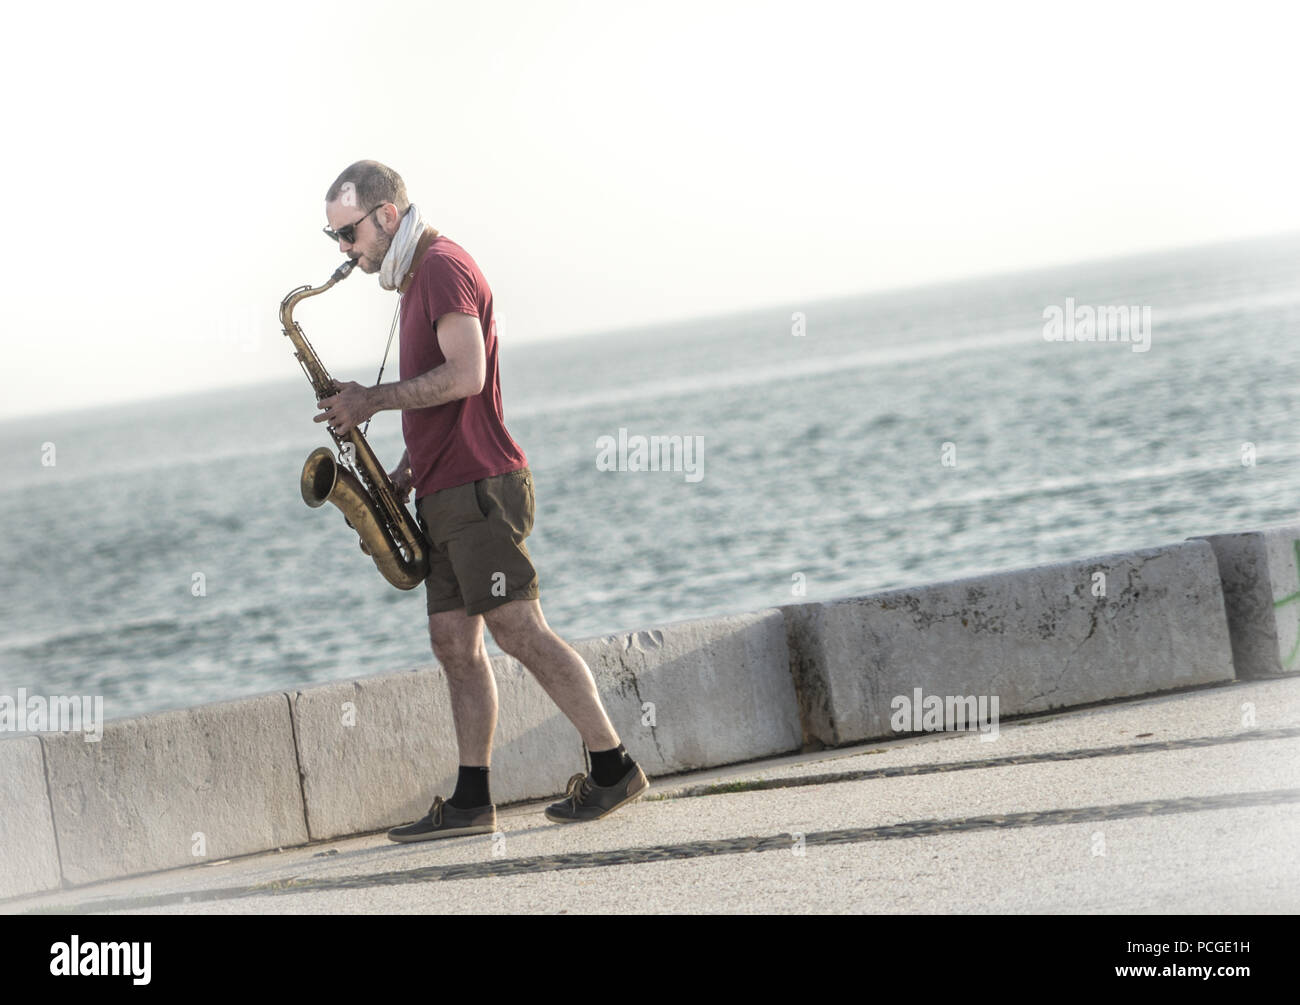 Lisbon. Saxophone player by the Targus river. - Stock Image